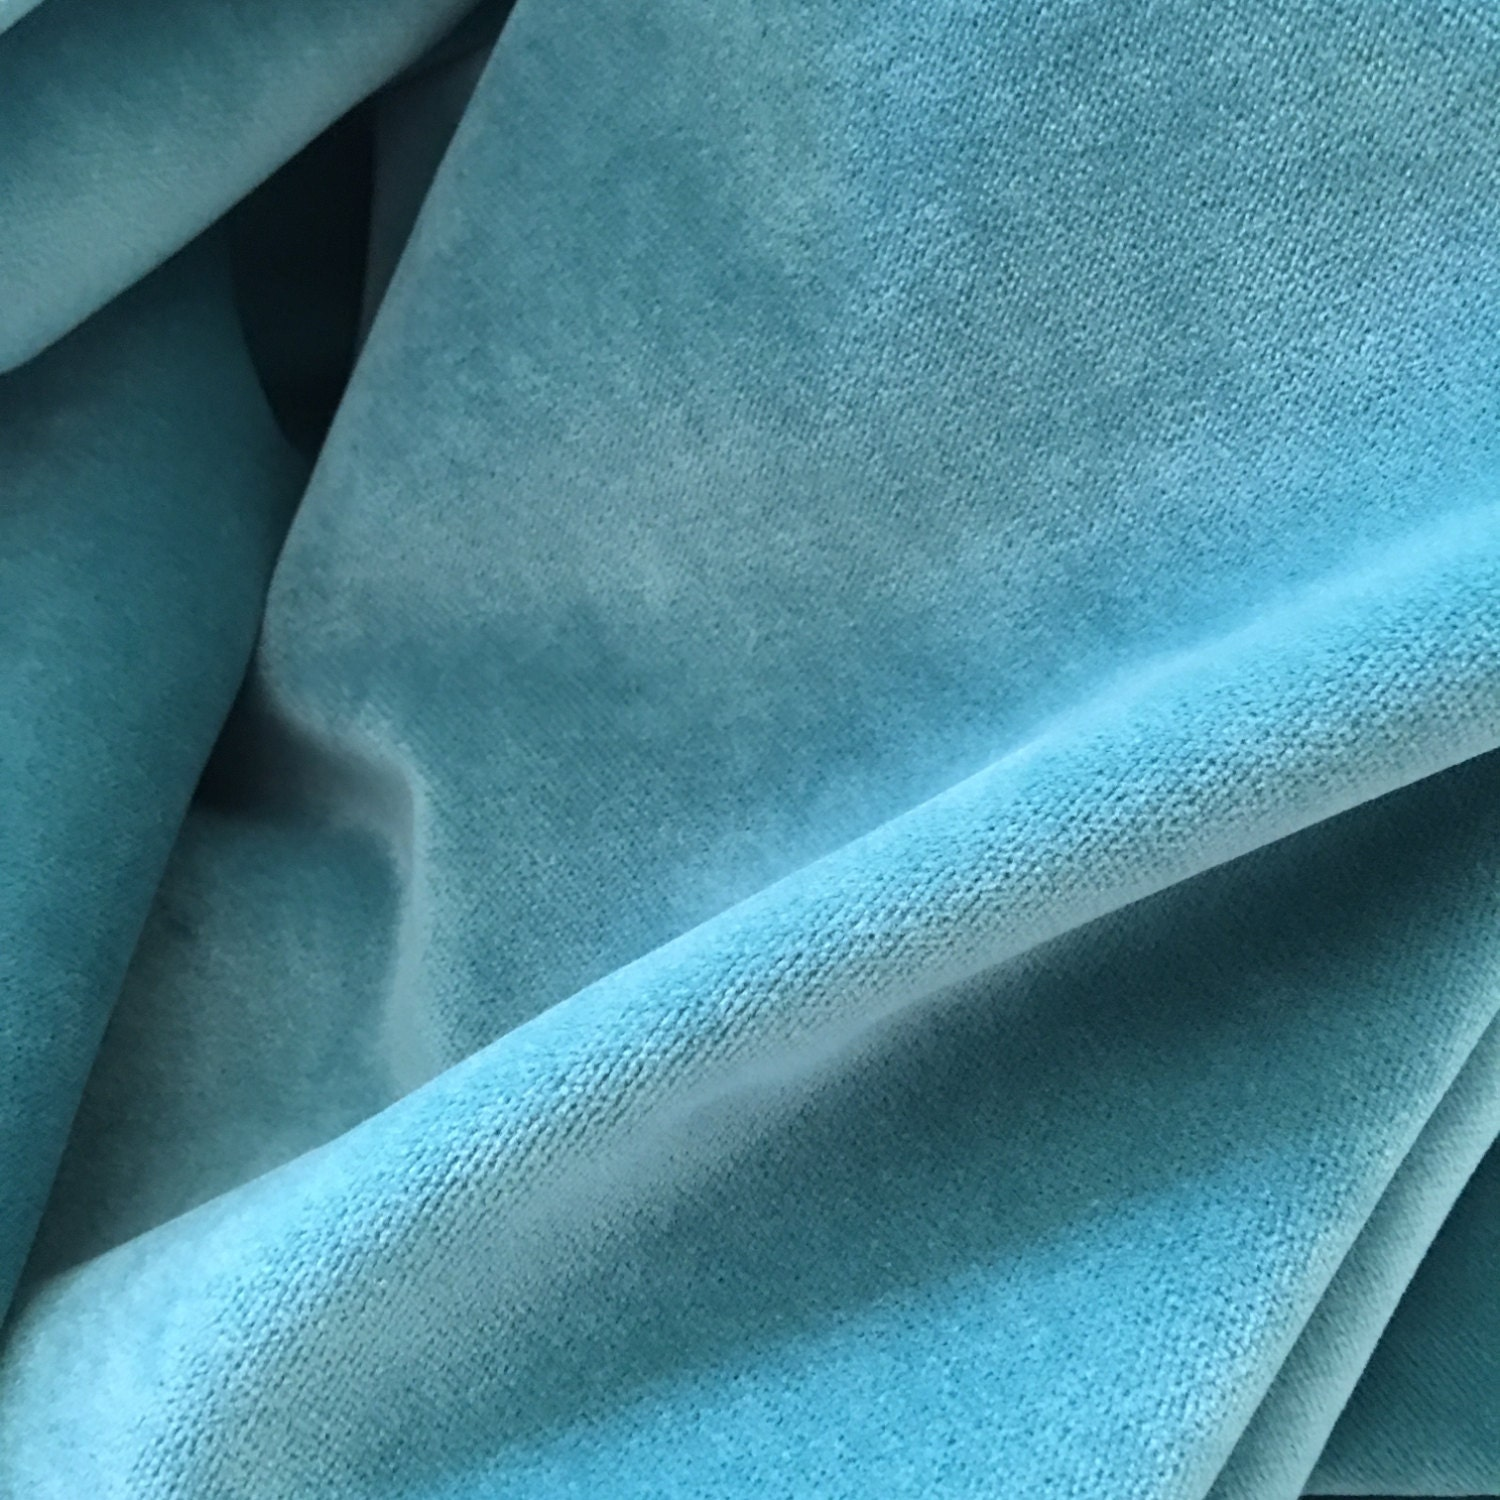 Bradberry Downs Blue Aqua Teal Light Green Yellow Wool: Aqua Teal Blue Velvet Fabric By MixInteriors On Etsy